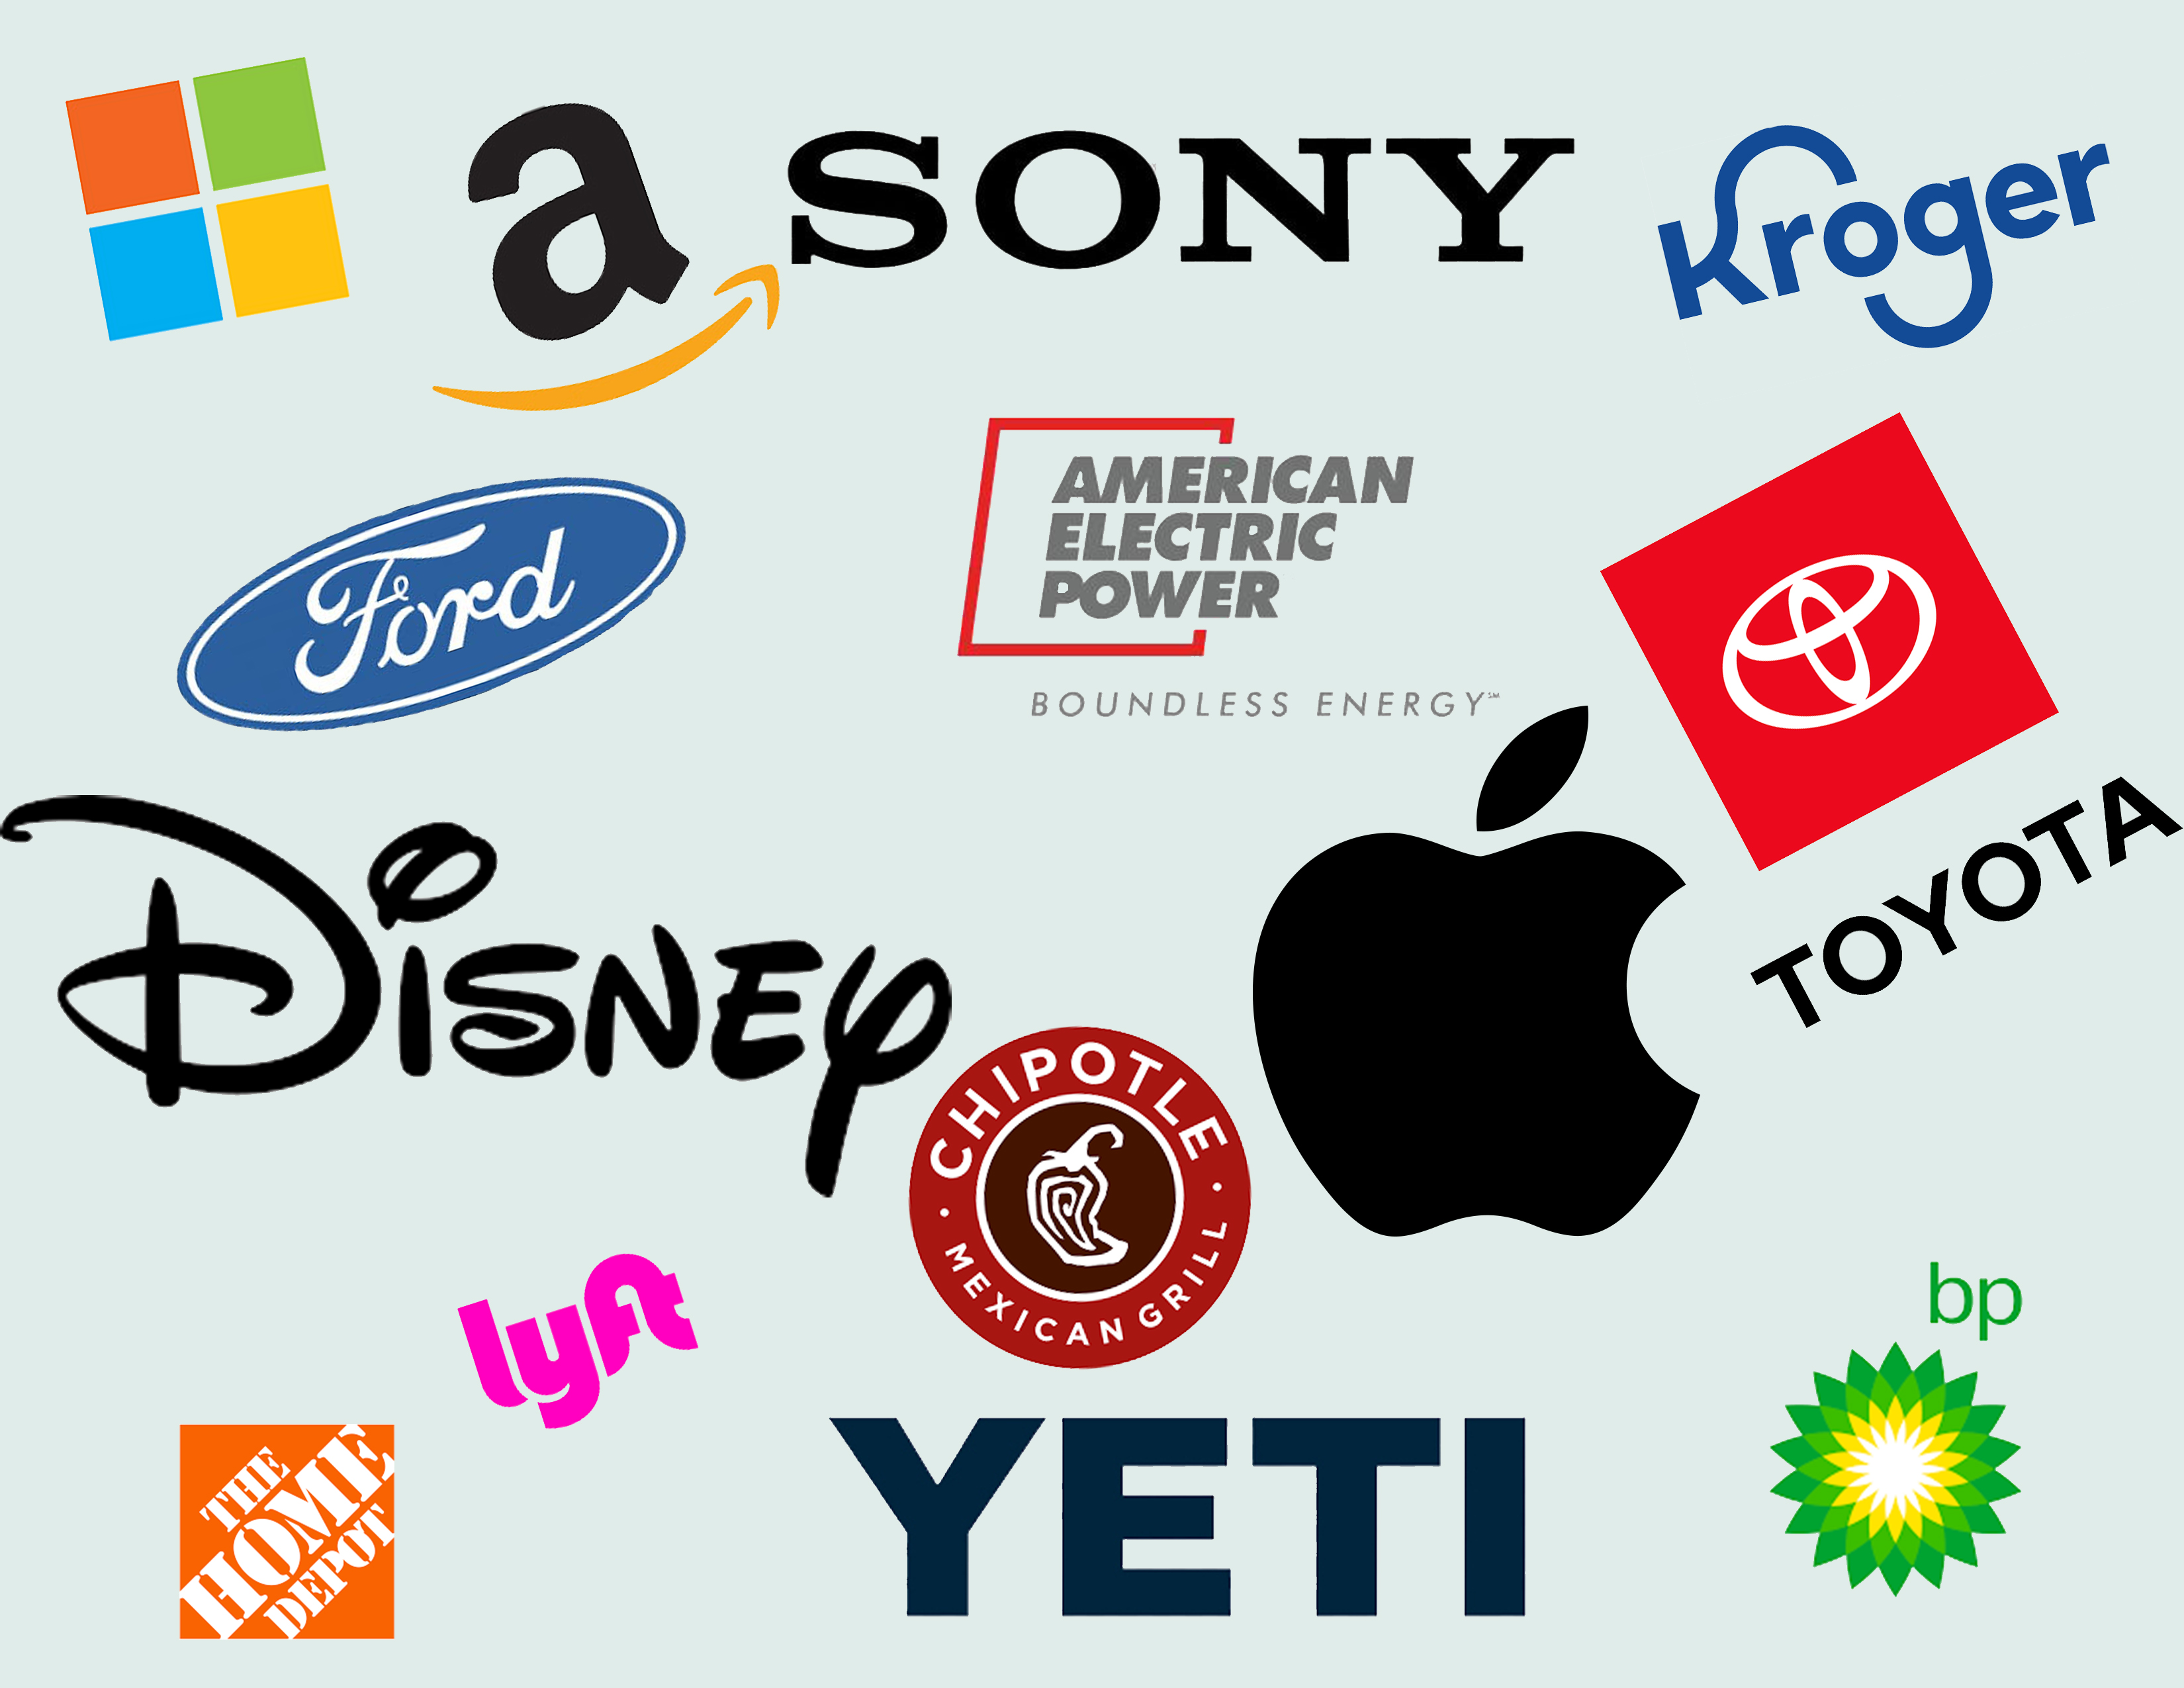 Company logos of major companies and brands in an image